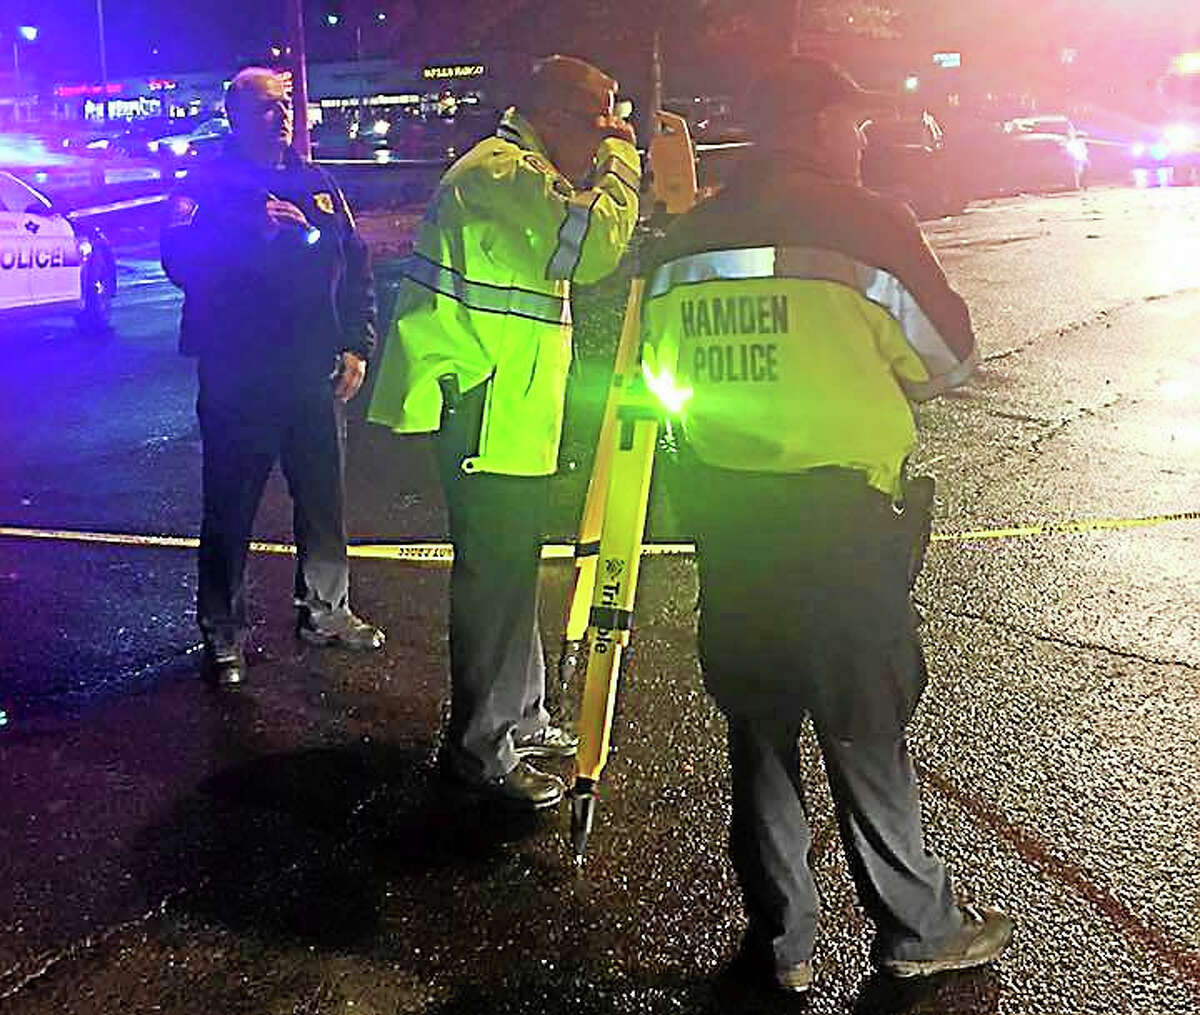 Several people were taken to the hospital and part of Dixwell Avenue in Hamden was shut down Wednesday night after a serious four-vehicle crash. Police are asking anyone who wtinessed it to call them.